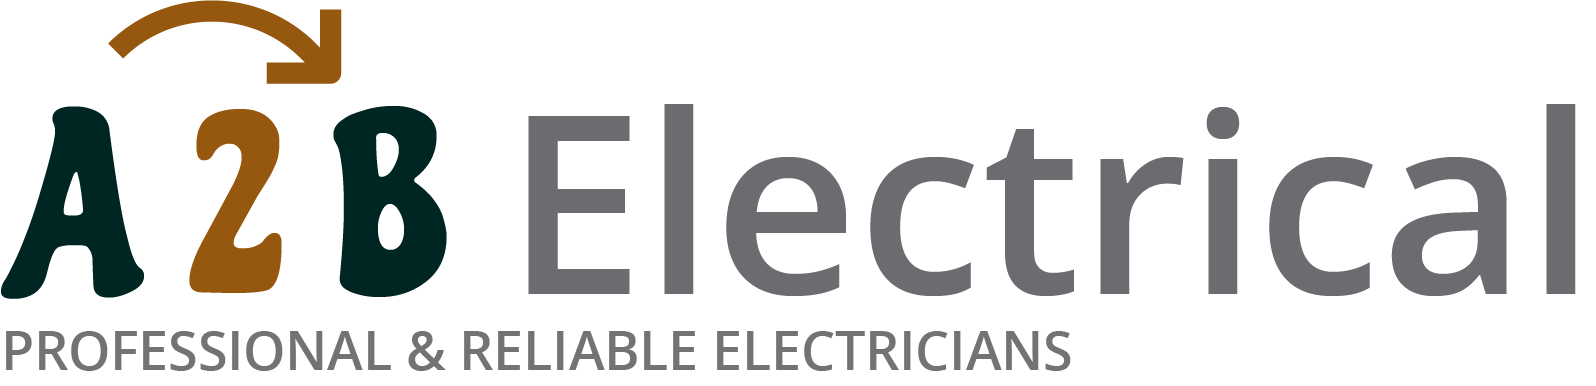 If you have electrical wiring problems in Highbury, we can provide an electrician to have a look for you.